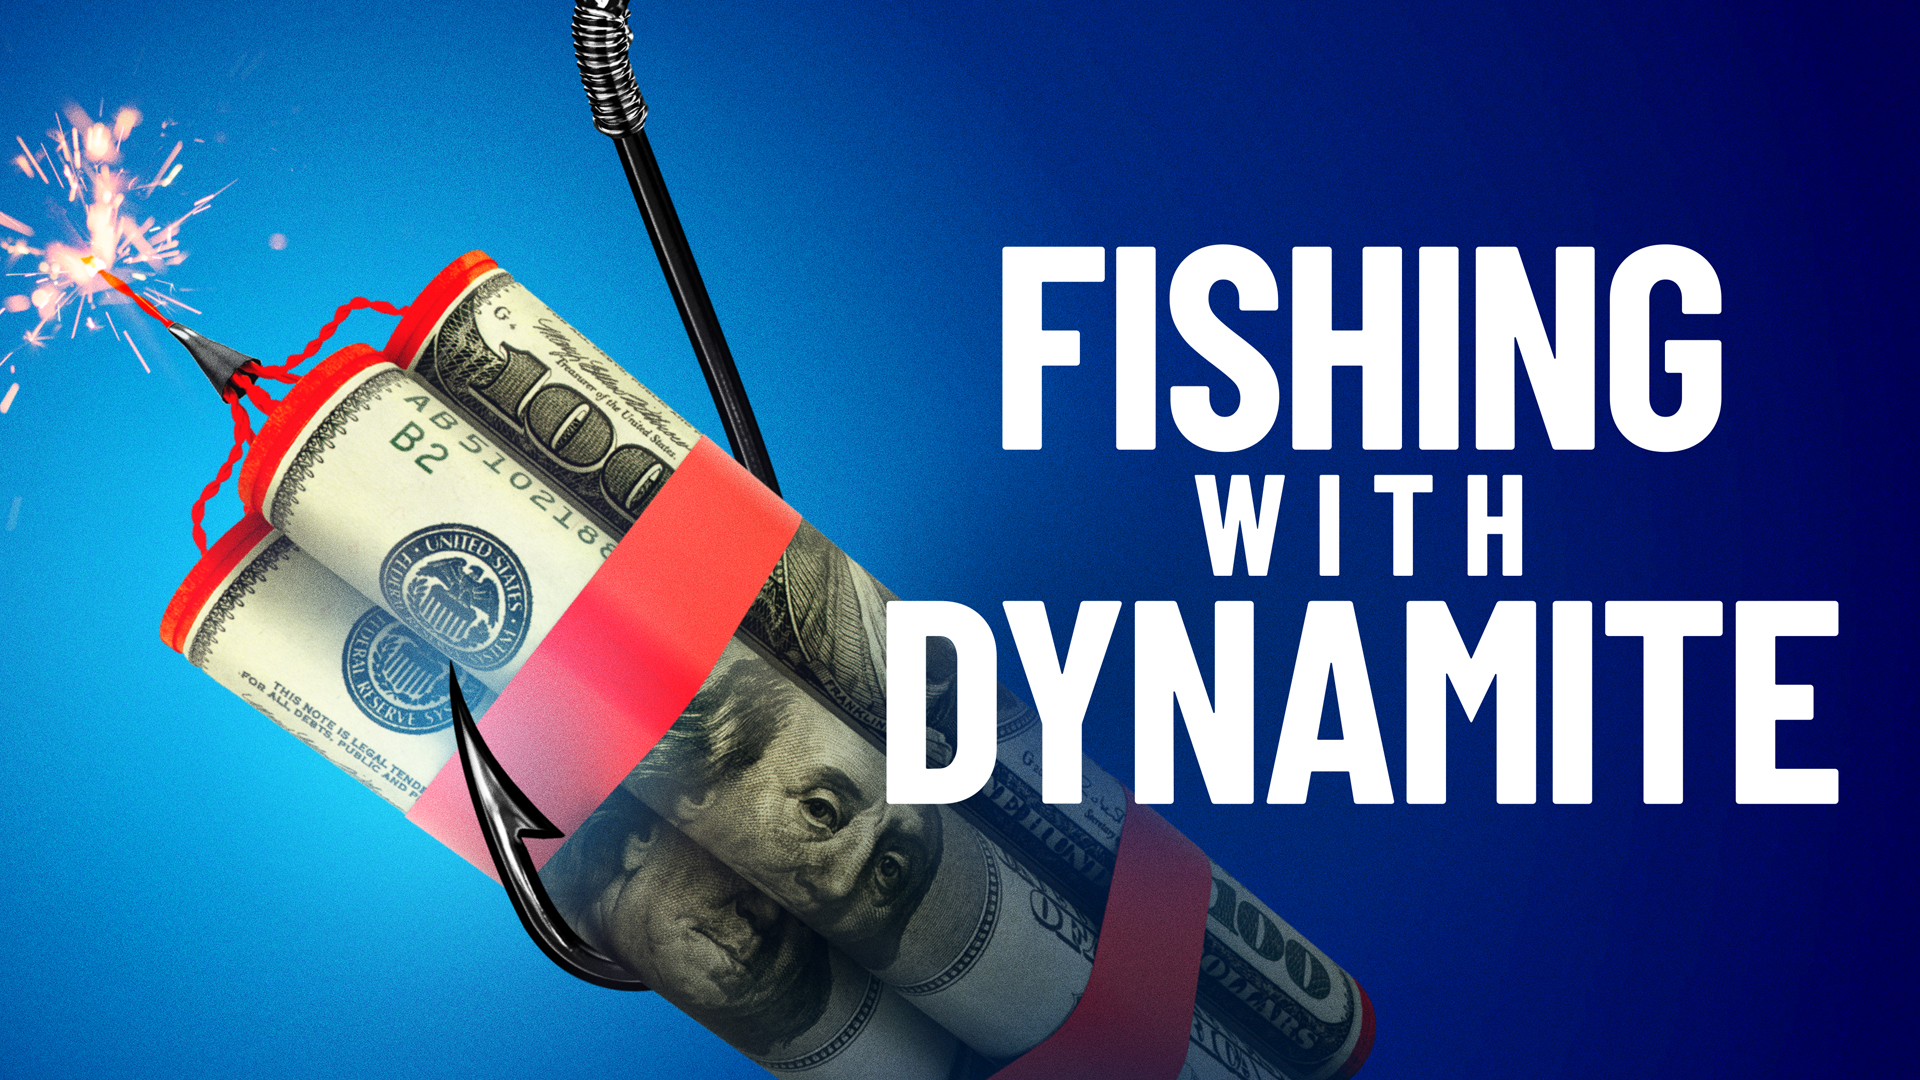 Fishing With Dynamite